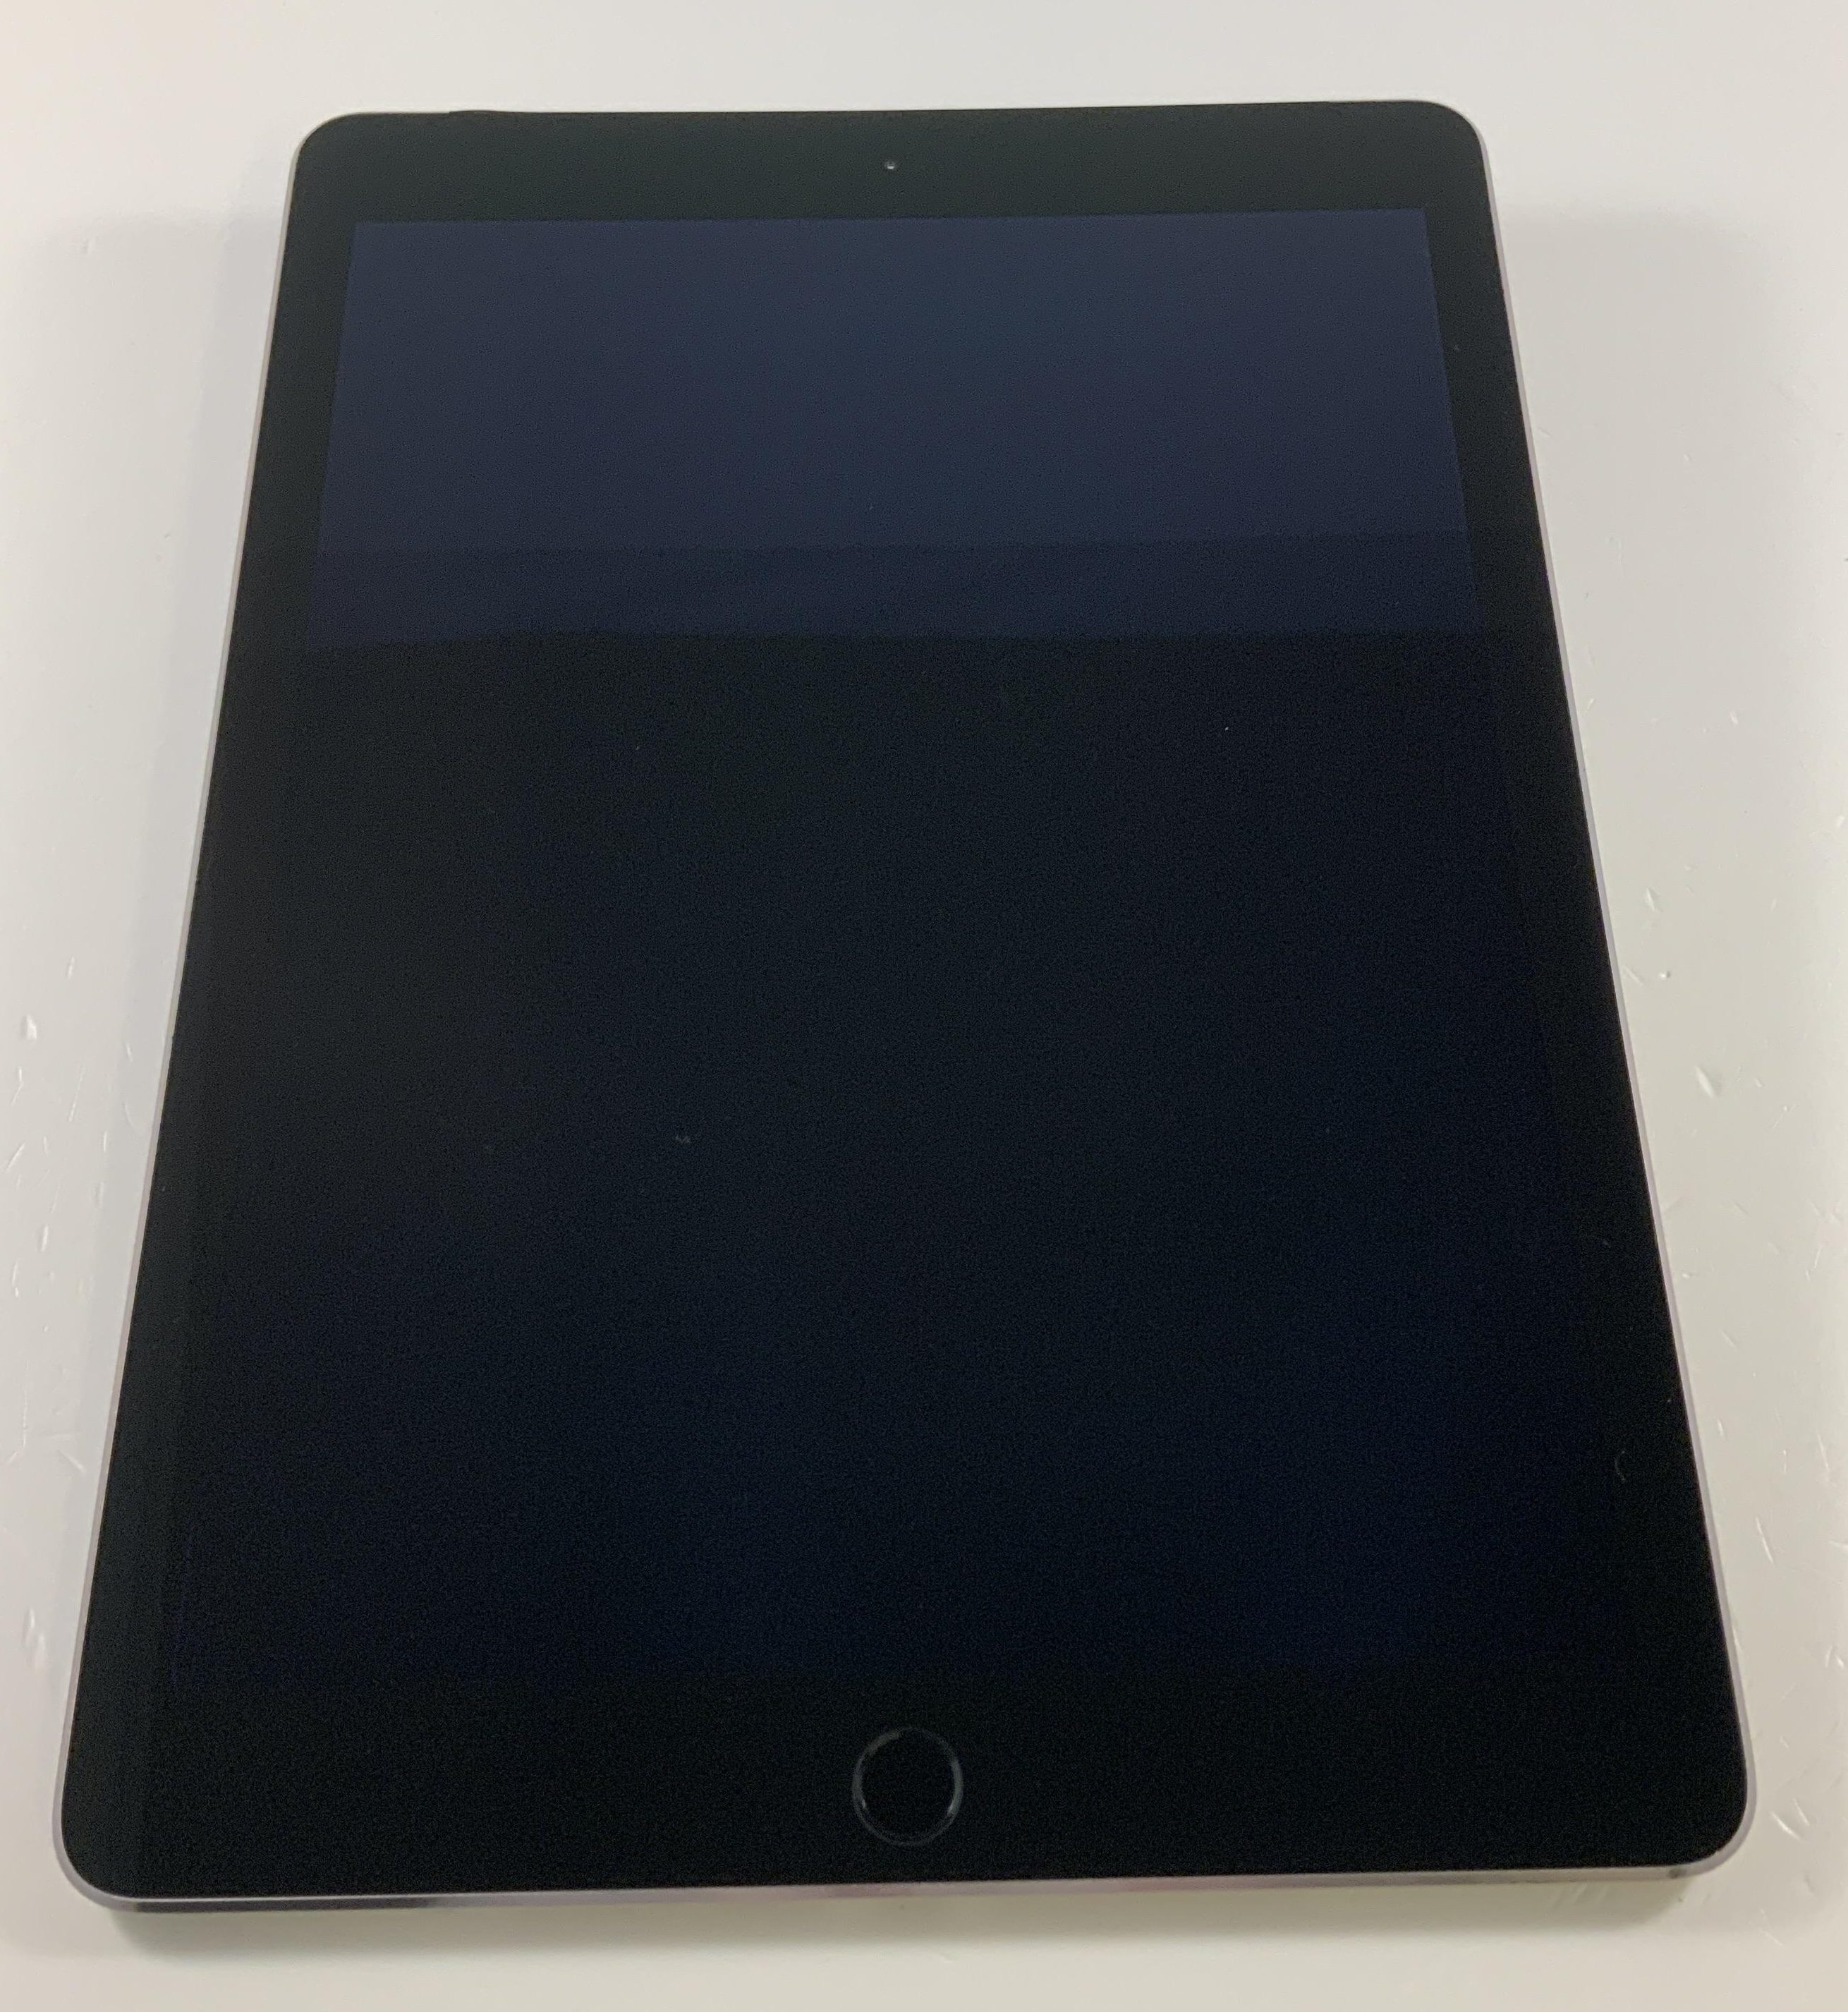 iPad Air 2 Wi-Fi + Cellular 64GB, 64GB, Space Gray, Afbeelding 1